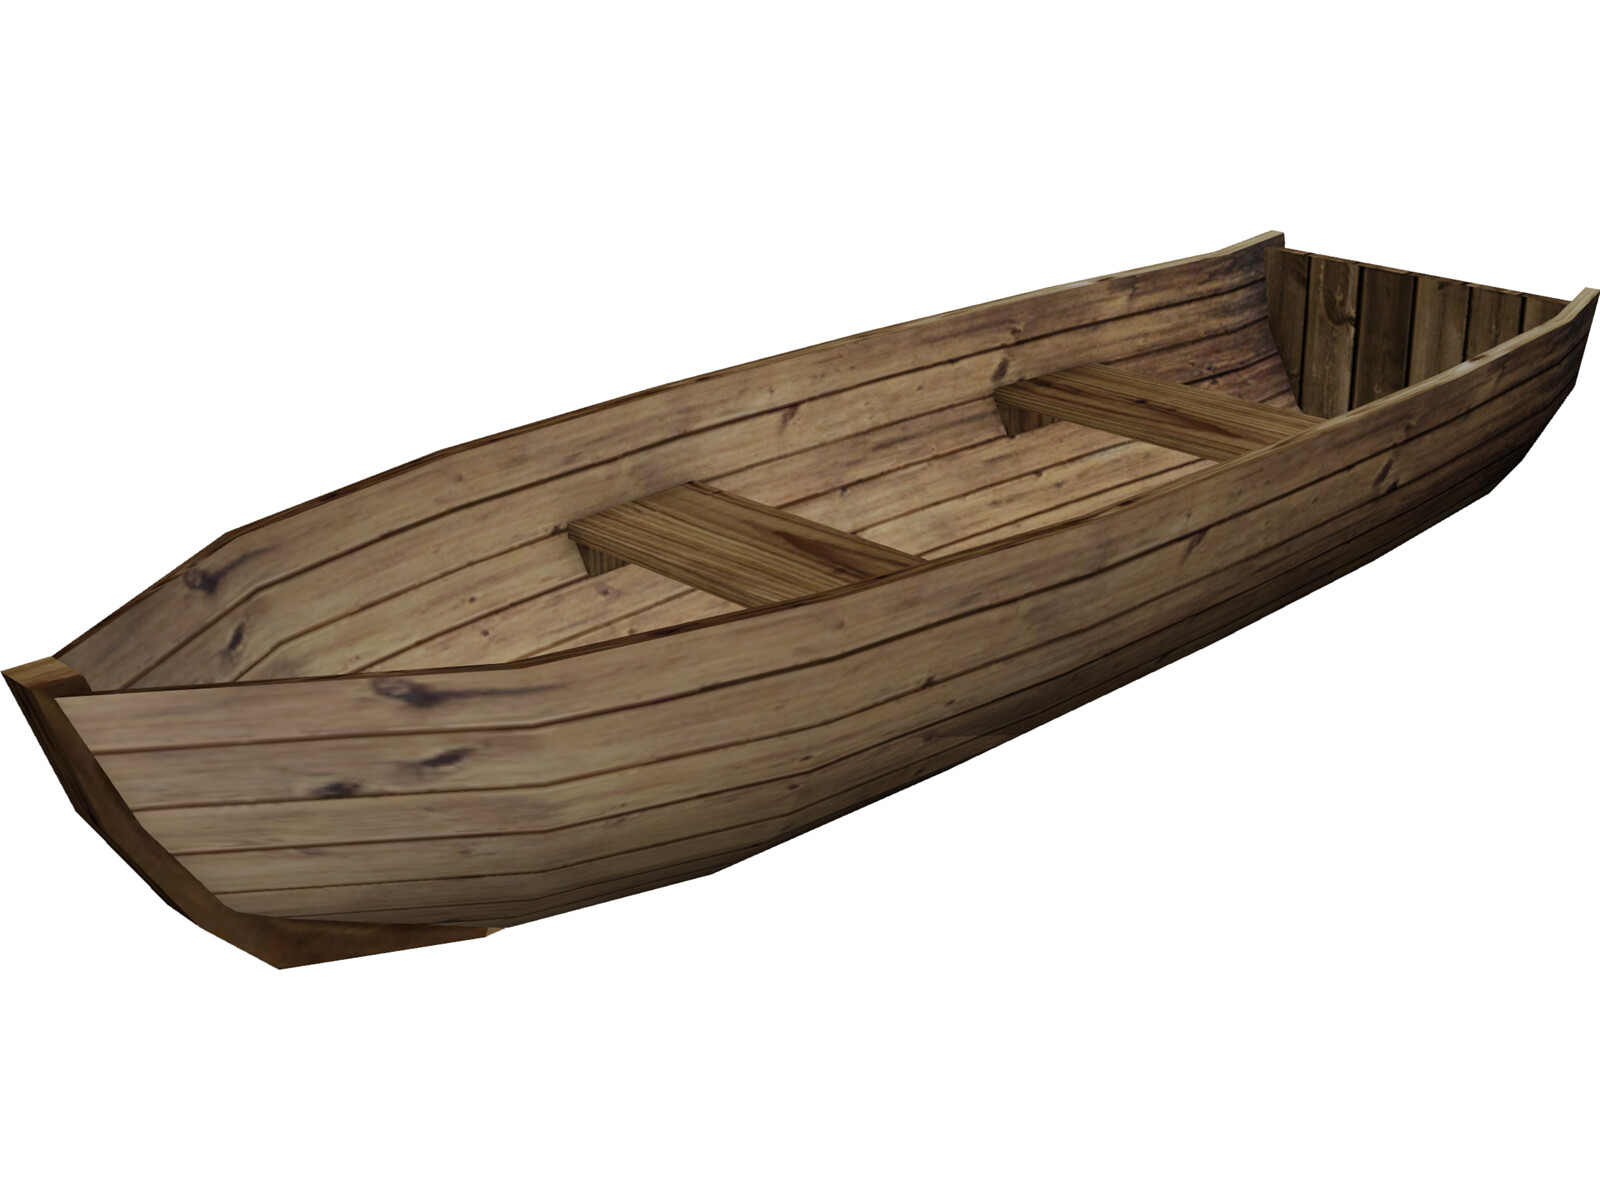 Wood Boat 3D Model - 3D CAD Browser